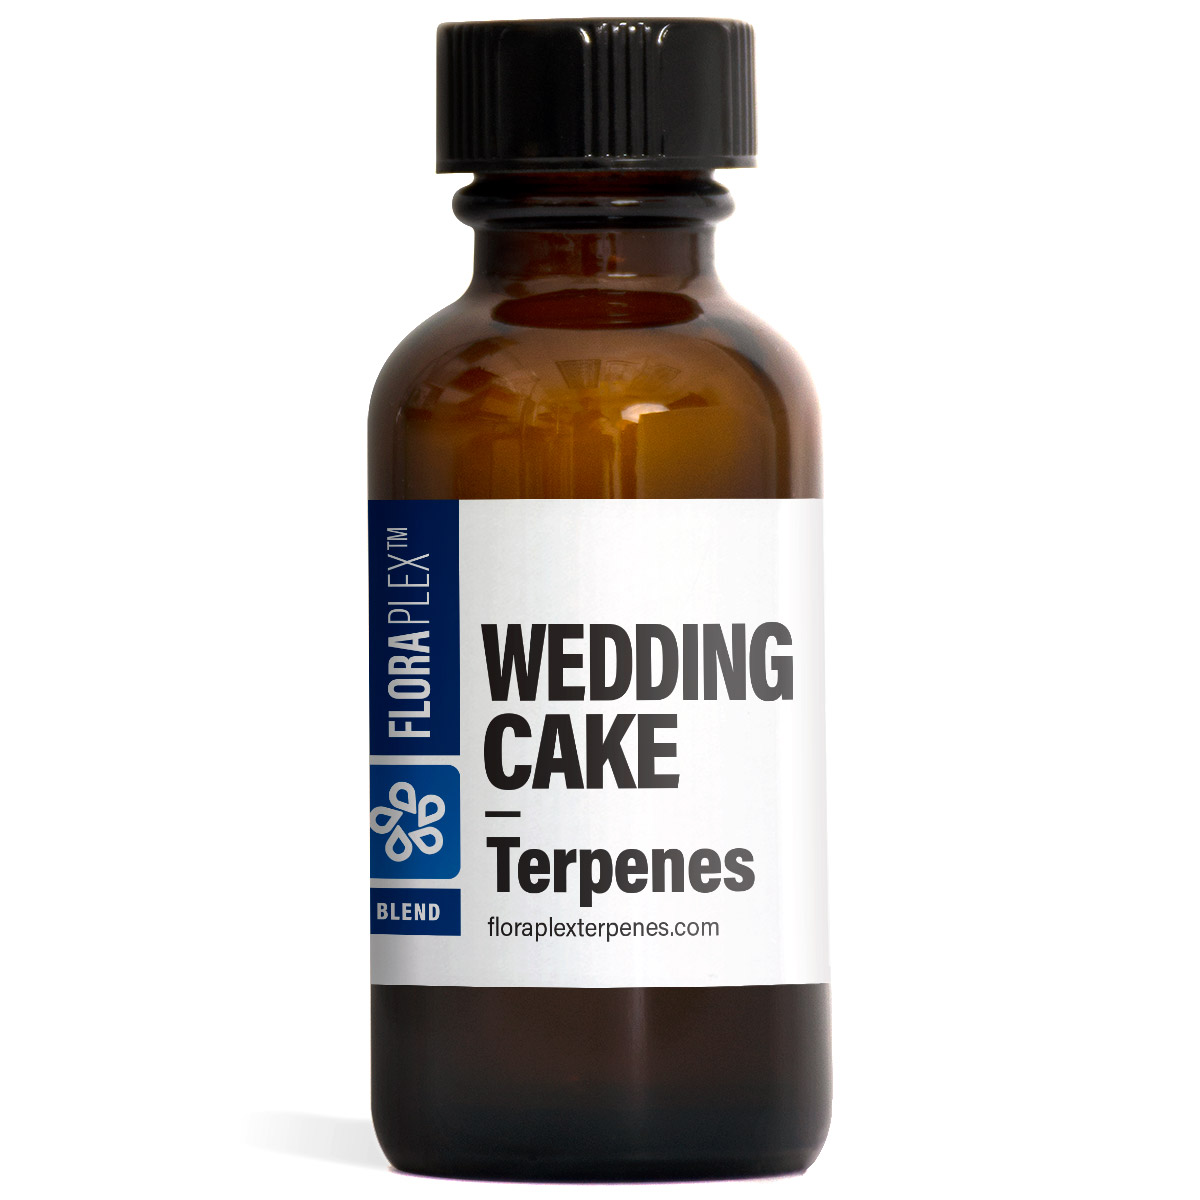 Wedding Cake Terpenes Blend